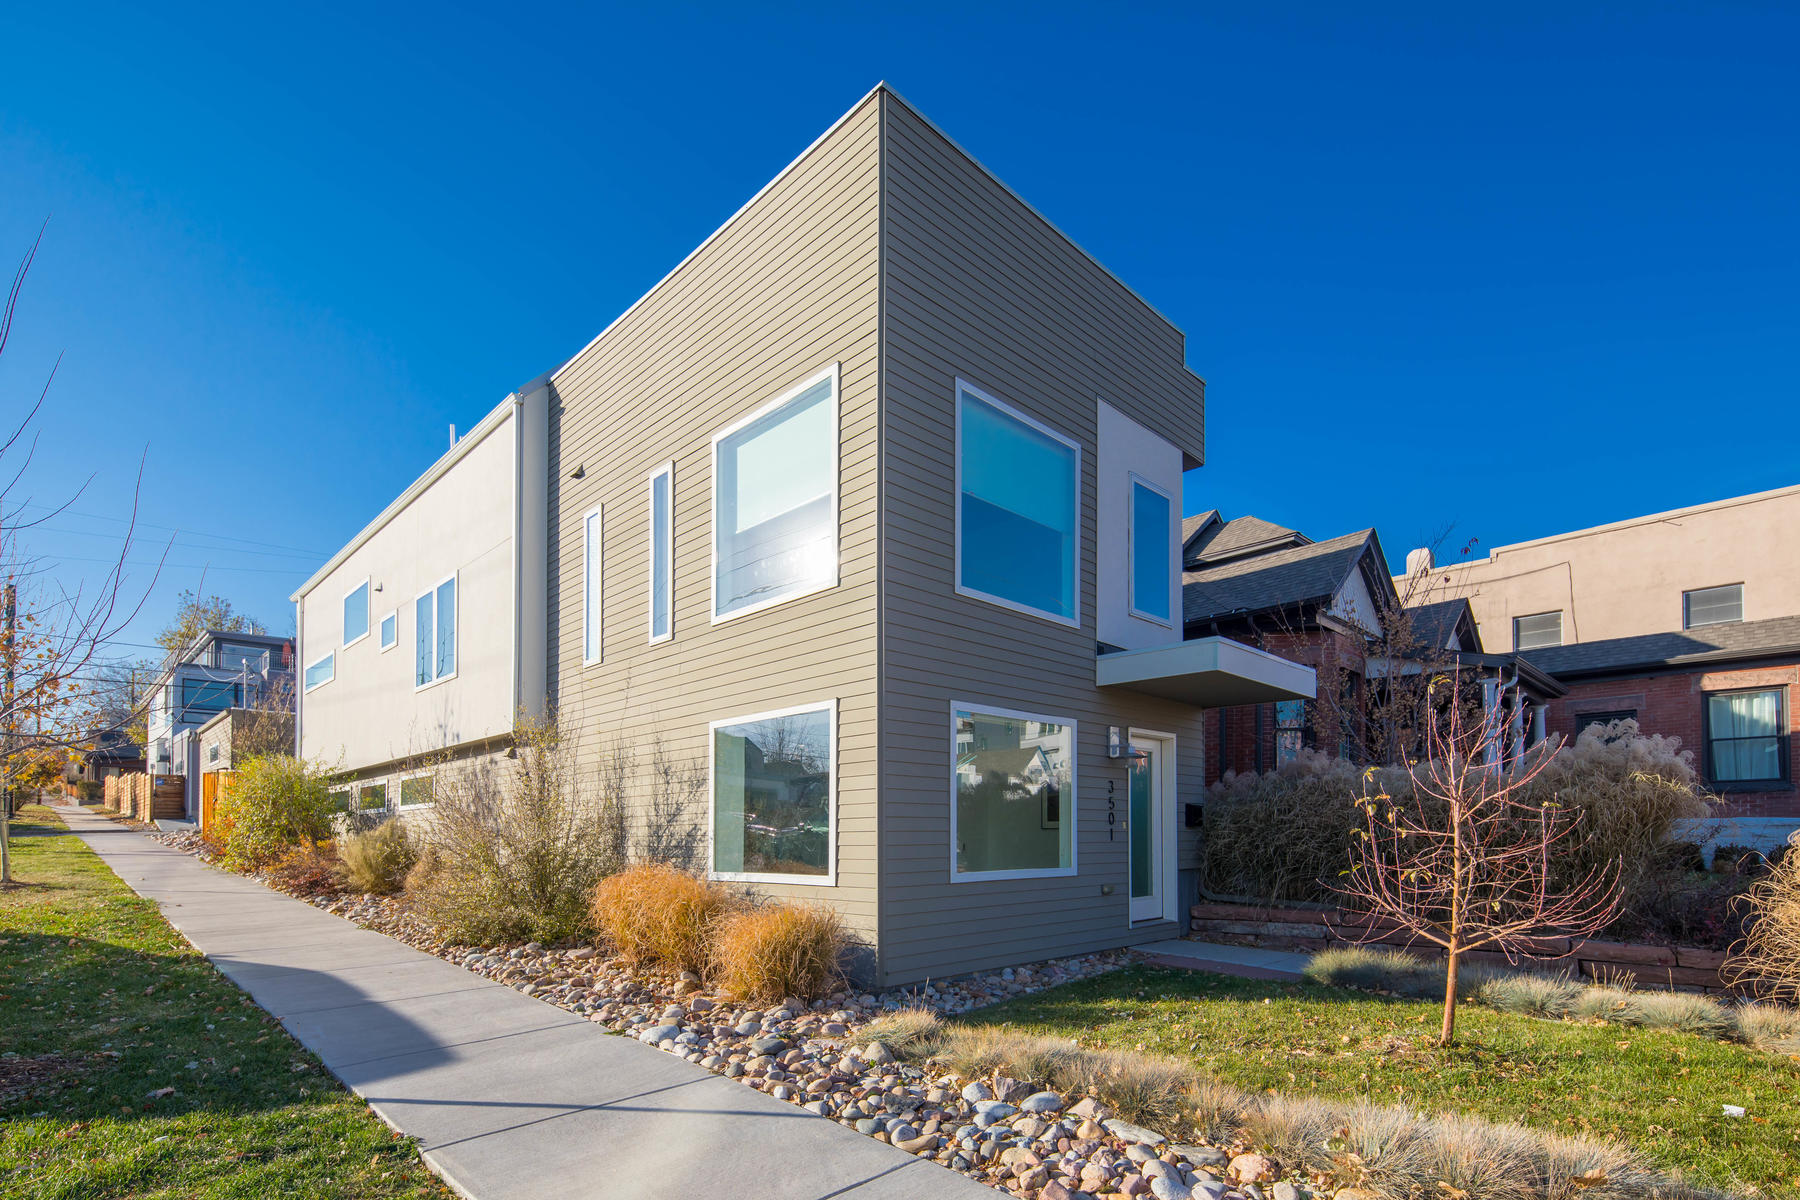 Single Family Home for Active at Incredible detached single-family contemporary home! 3501 Navajo St Denver, Colorado 80211 United States